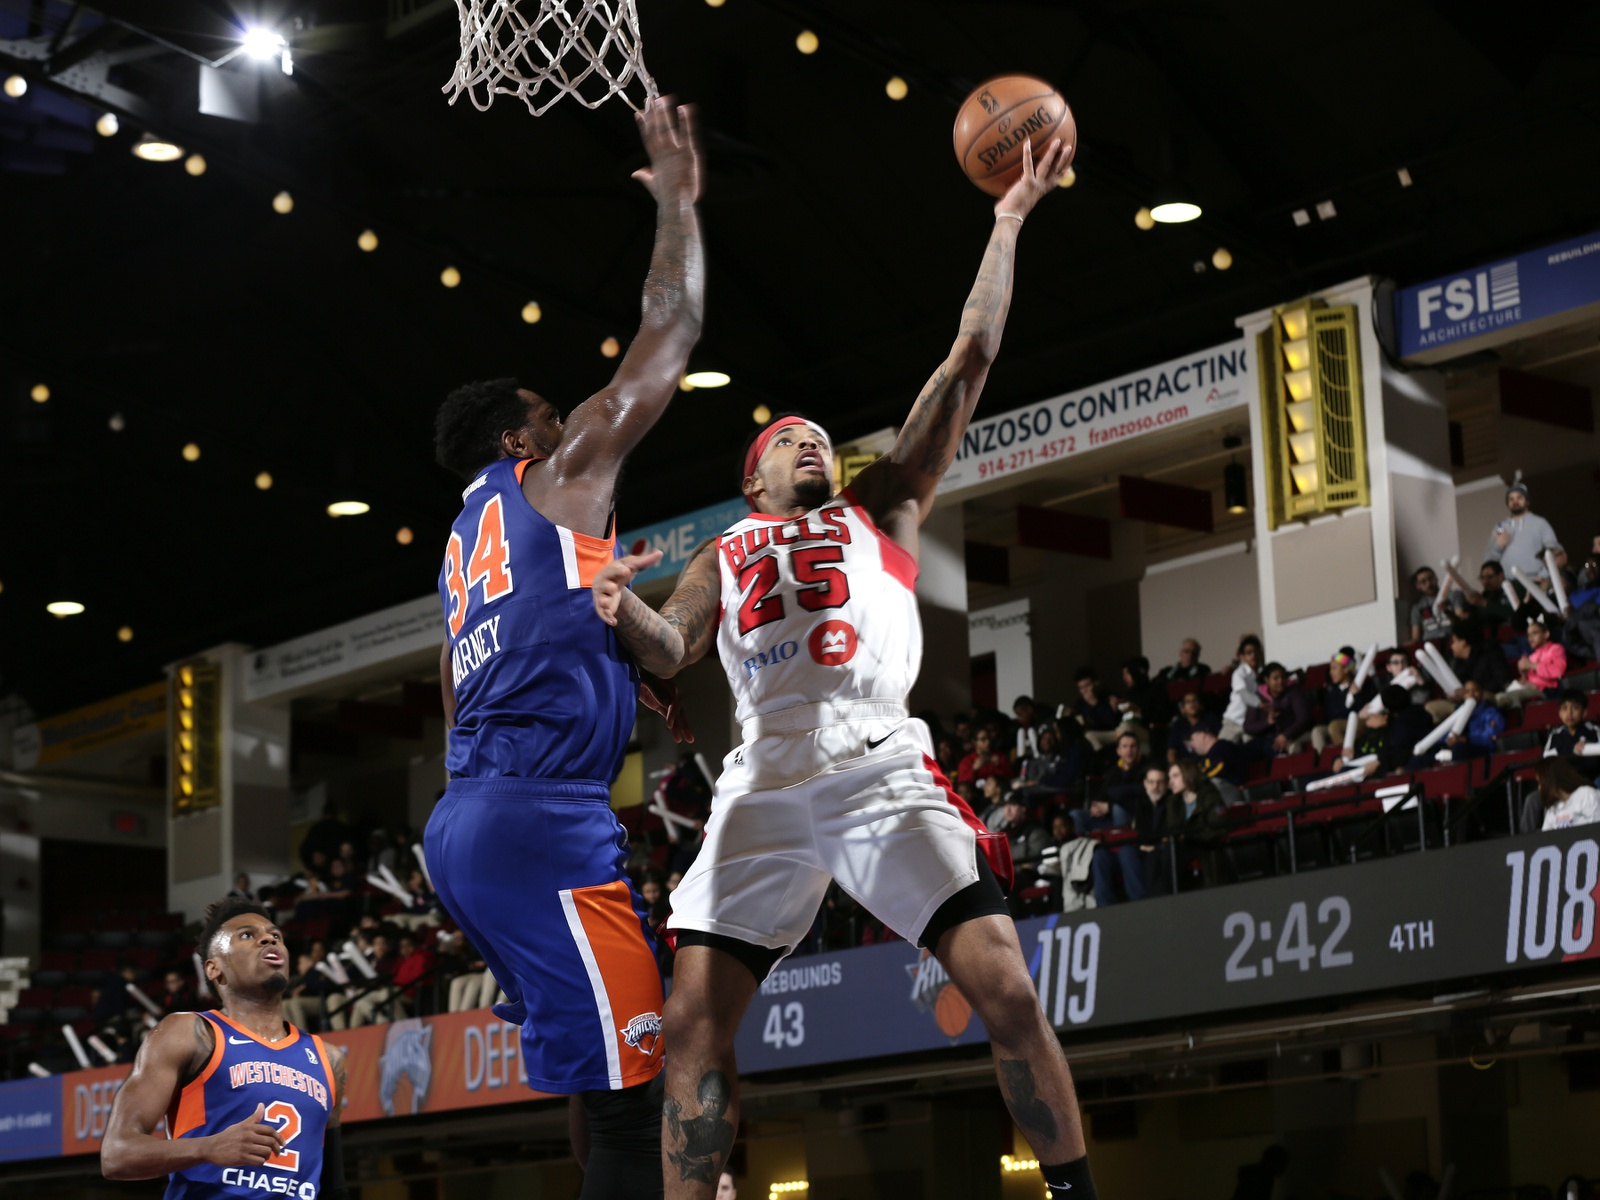 Walter Lemon Jr #25 of the Windy City Bulls drives against Jameel Warney #34 of the Westchester Knicks at the Westchester County Center on March 7, 2019 in Westchester, New York.